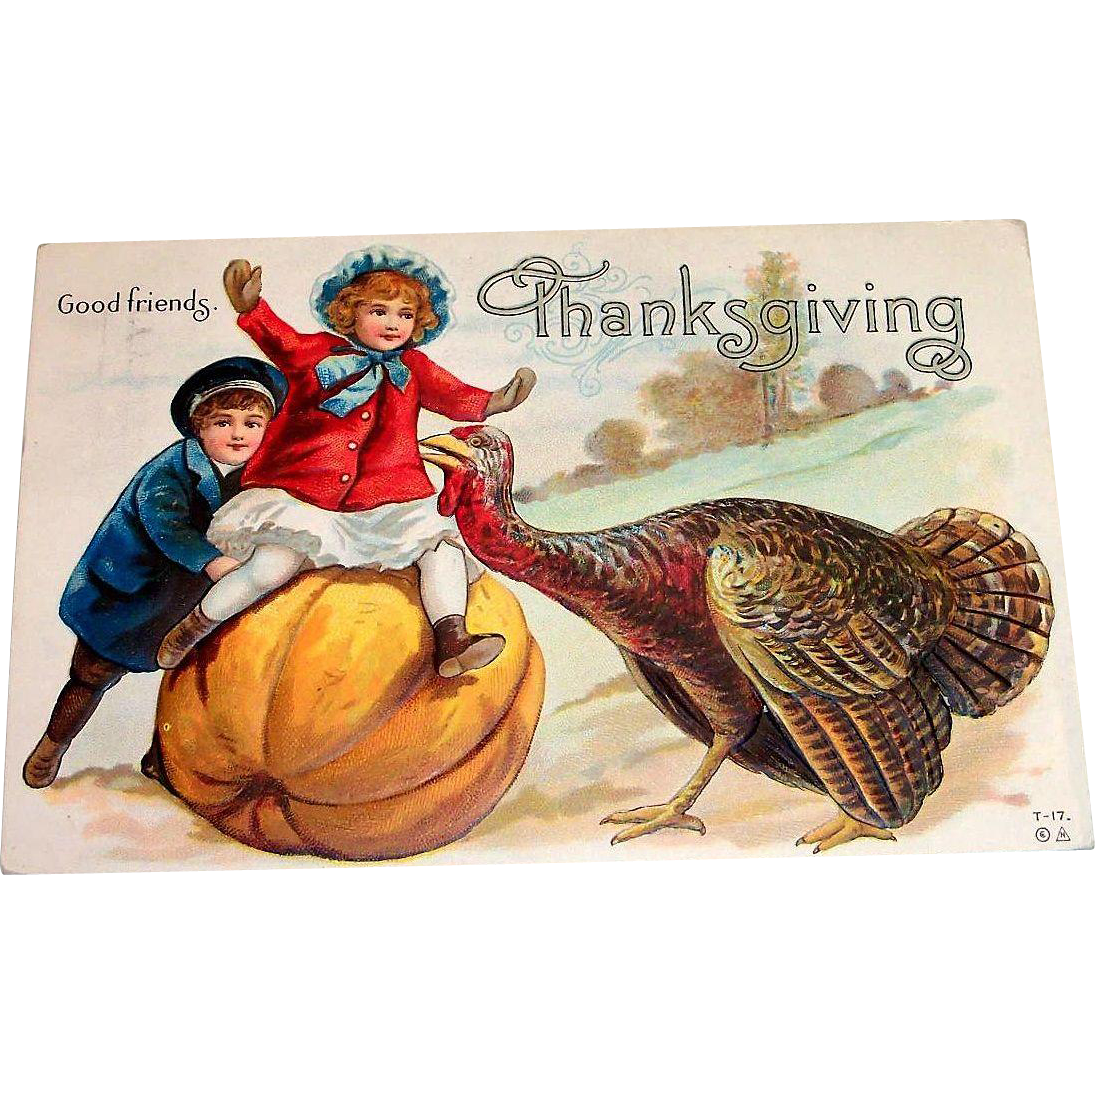 Vintage Good Friends, Thanksgiving Postcard - 1912